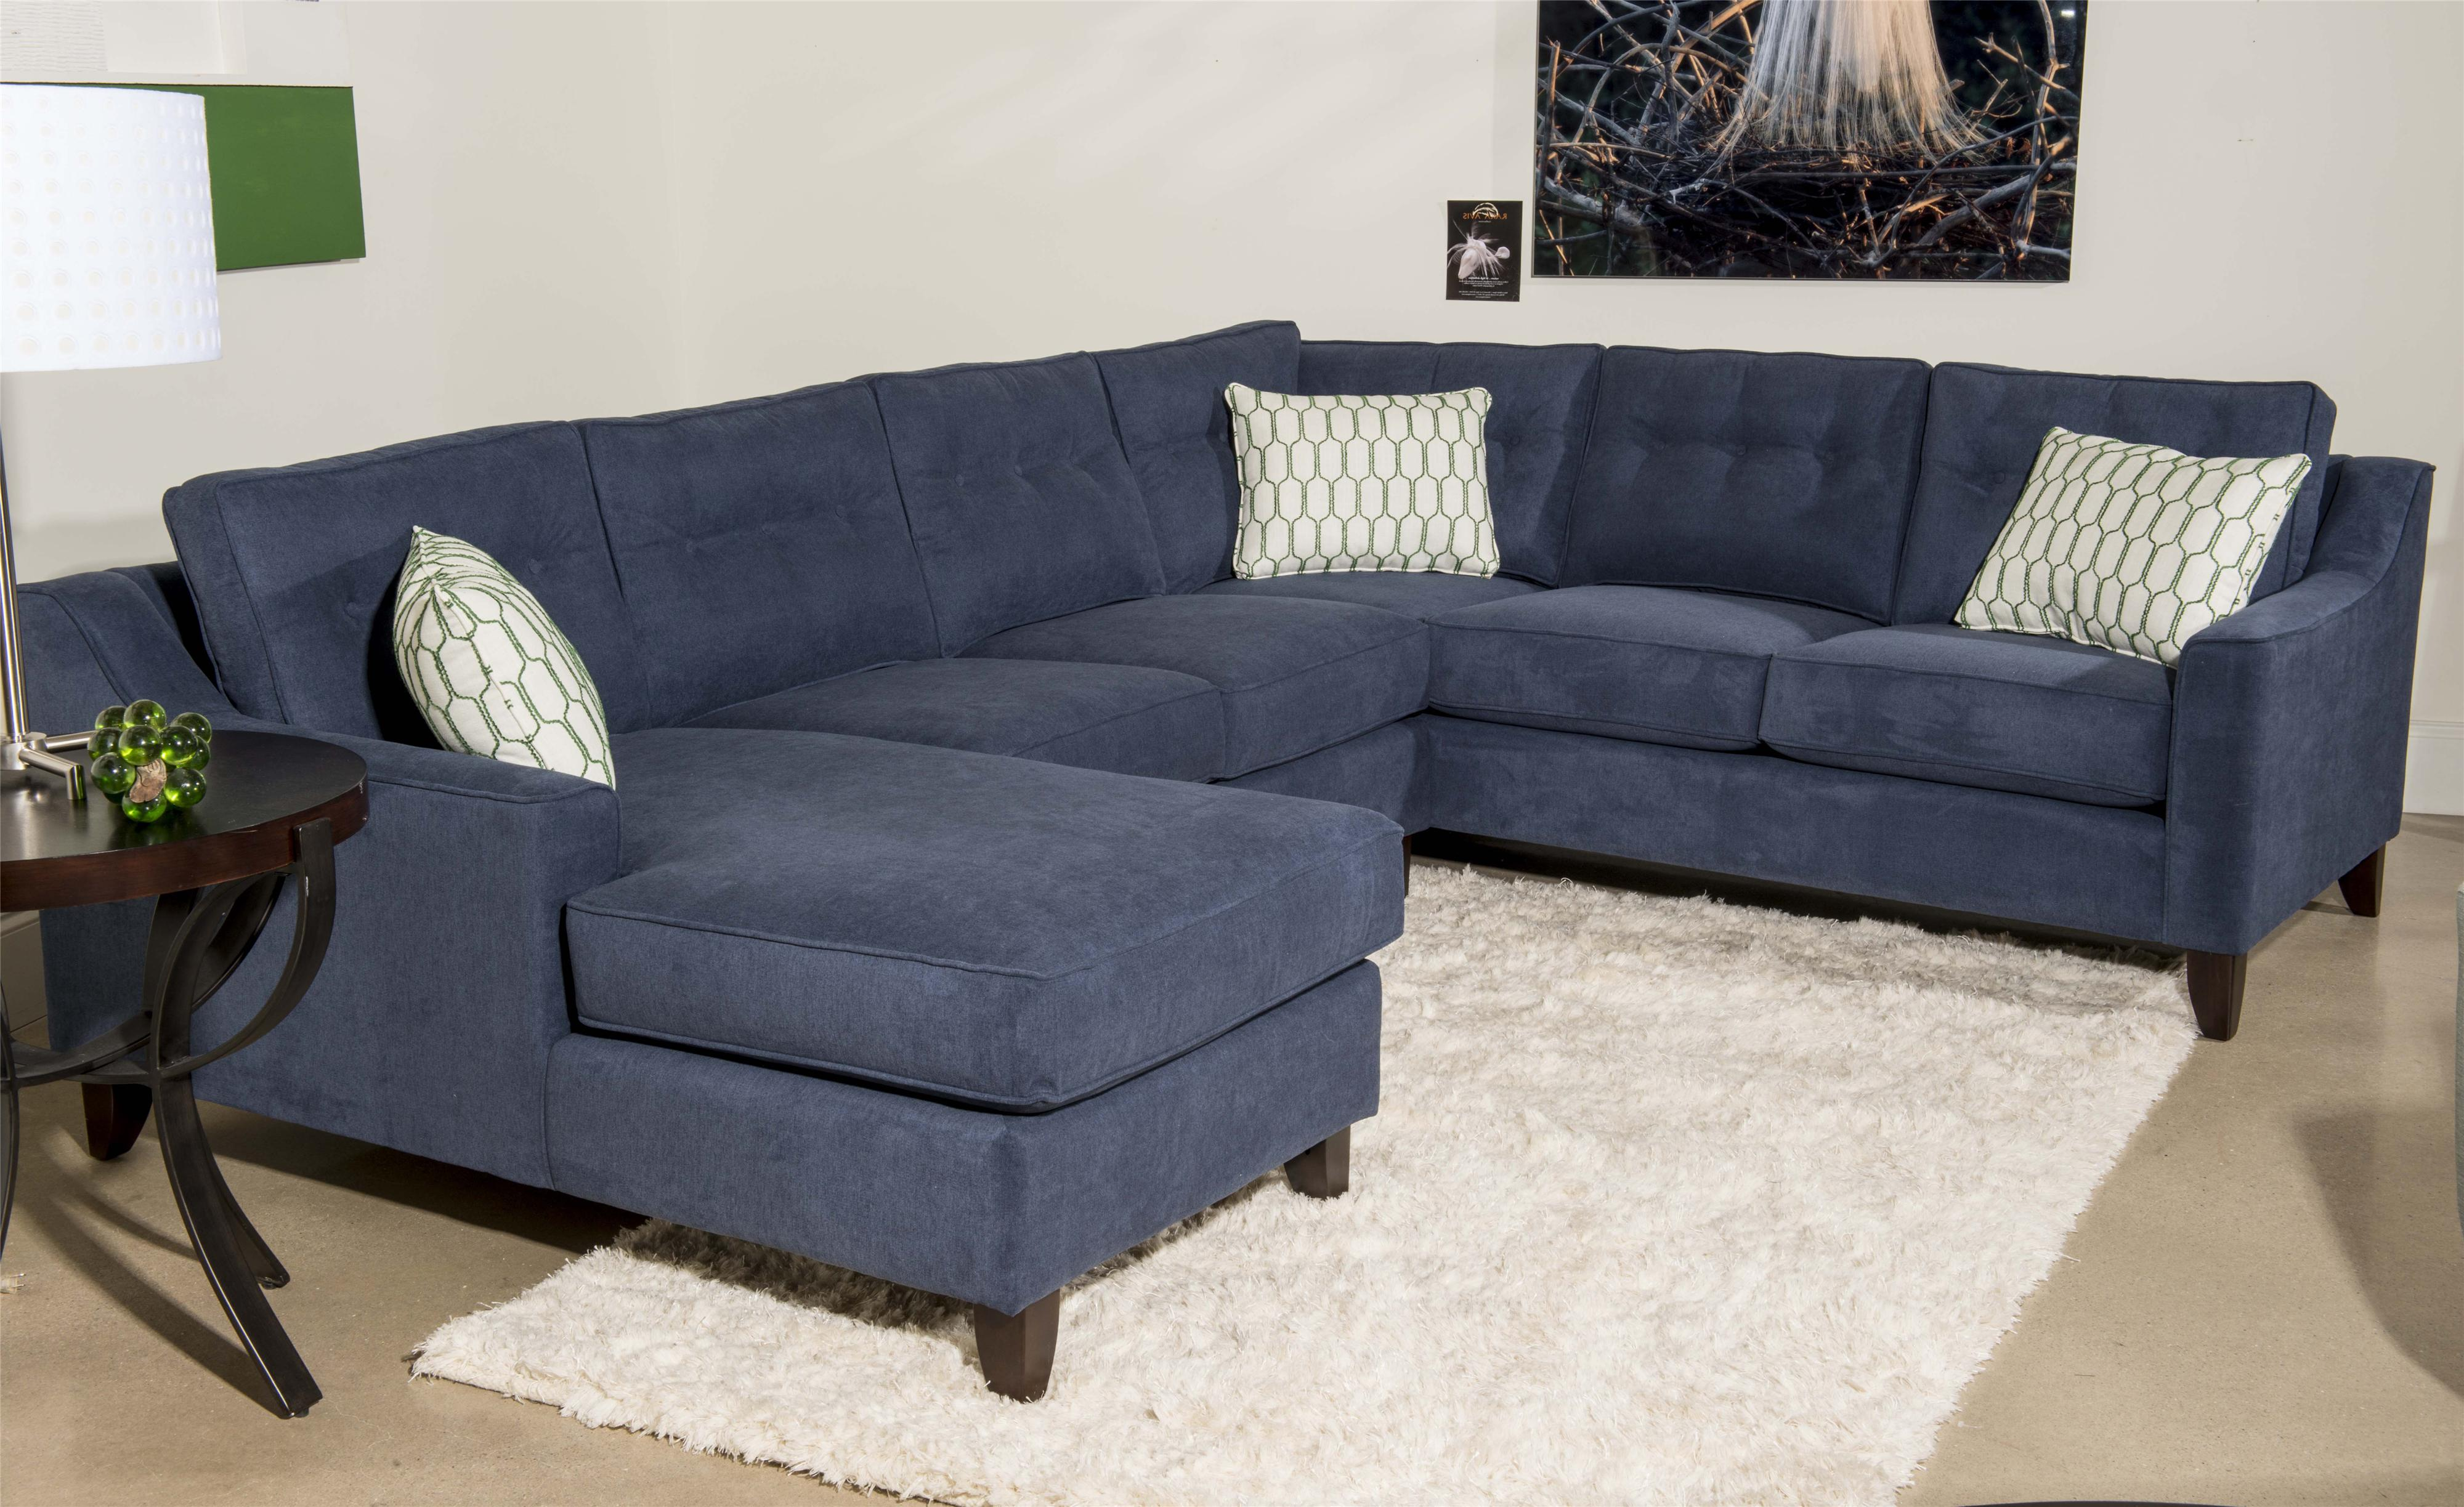 Contemporary 3 piece sectional sofa with chaise by for Sectional sofa by the piece